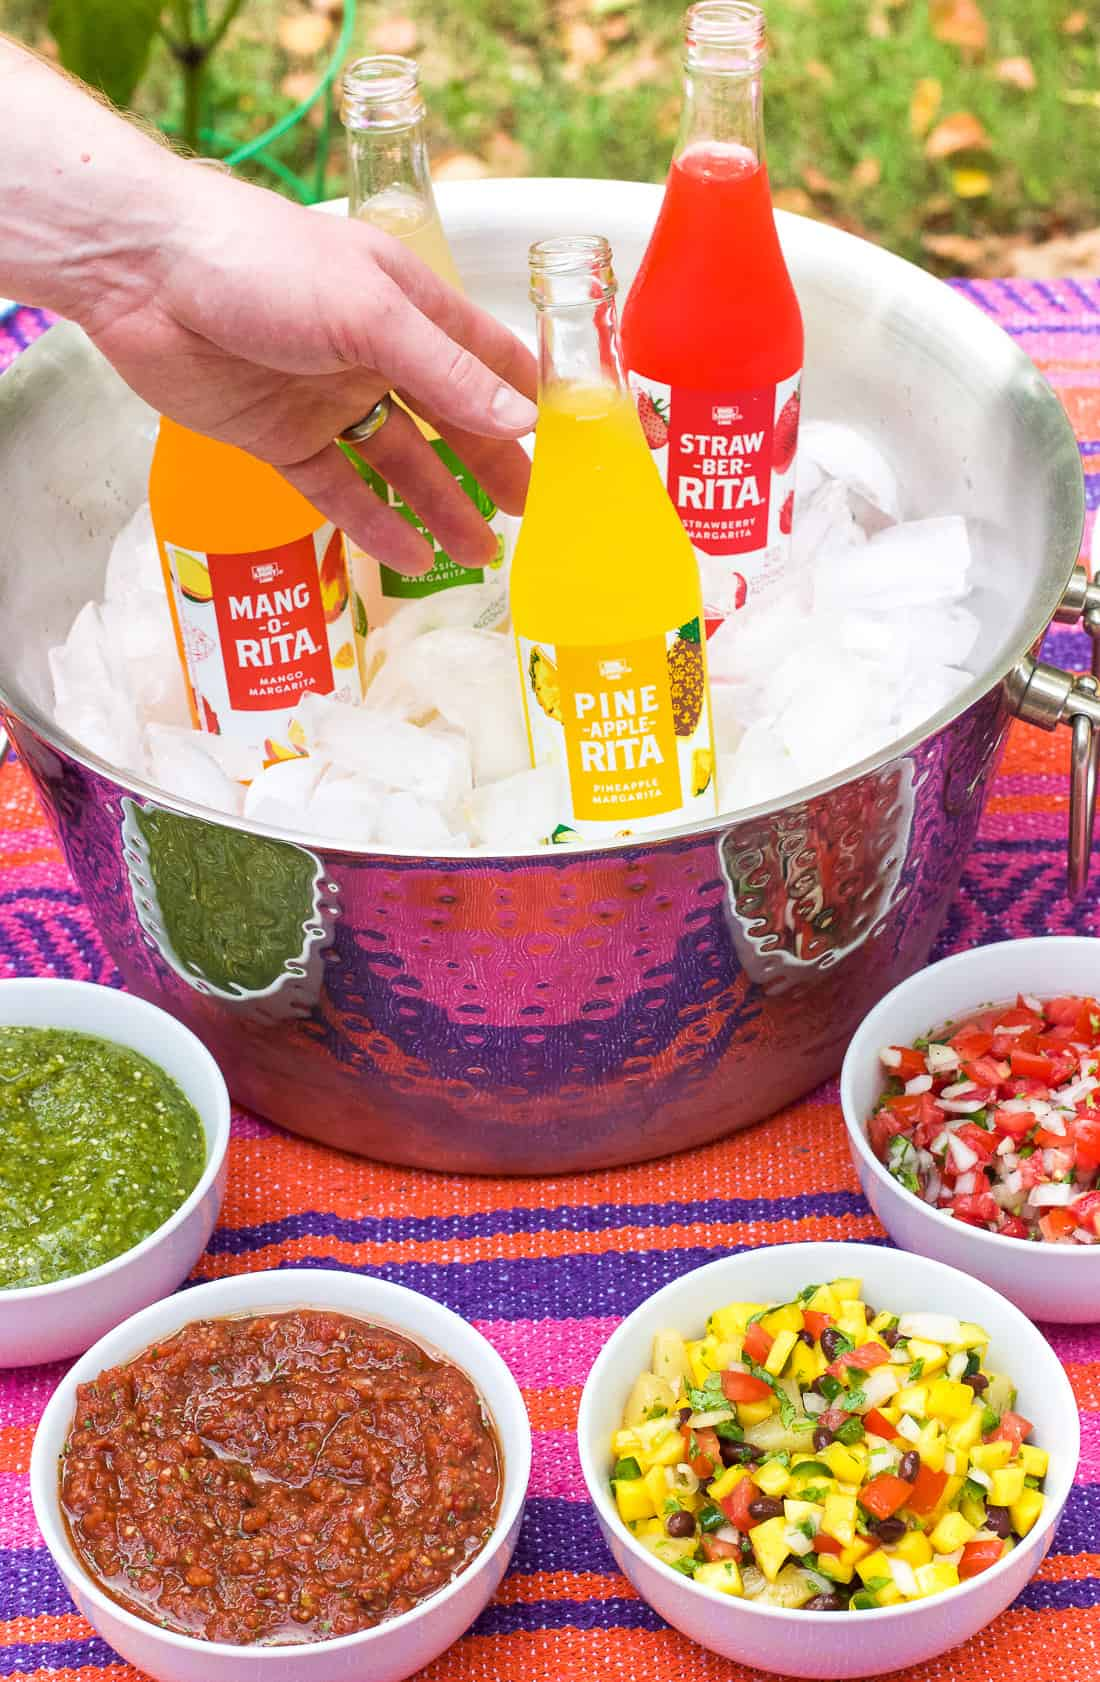 This DIY salsa bar is sure to impress your guests! Featuring four make-ahead homemade salsas, this salsa bar can be customized just to your liking.